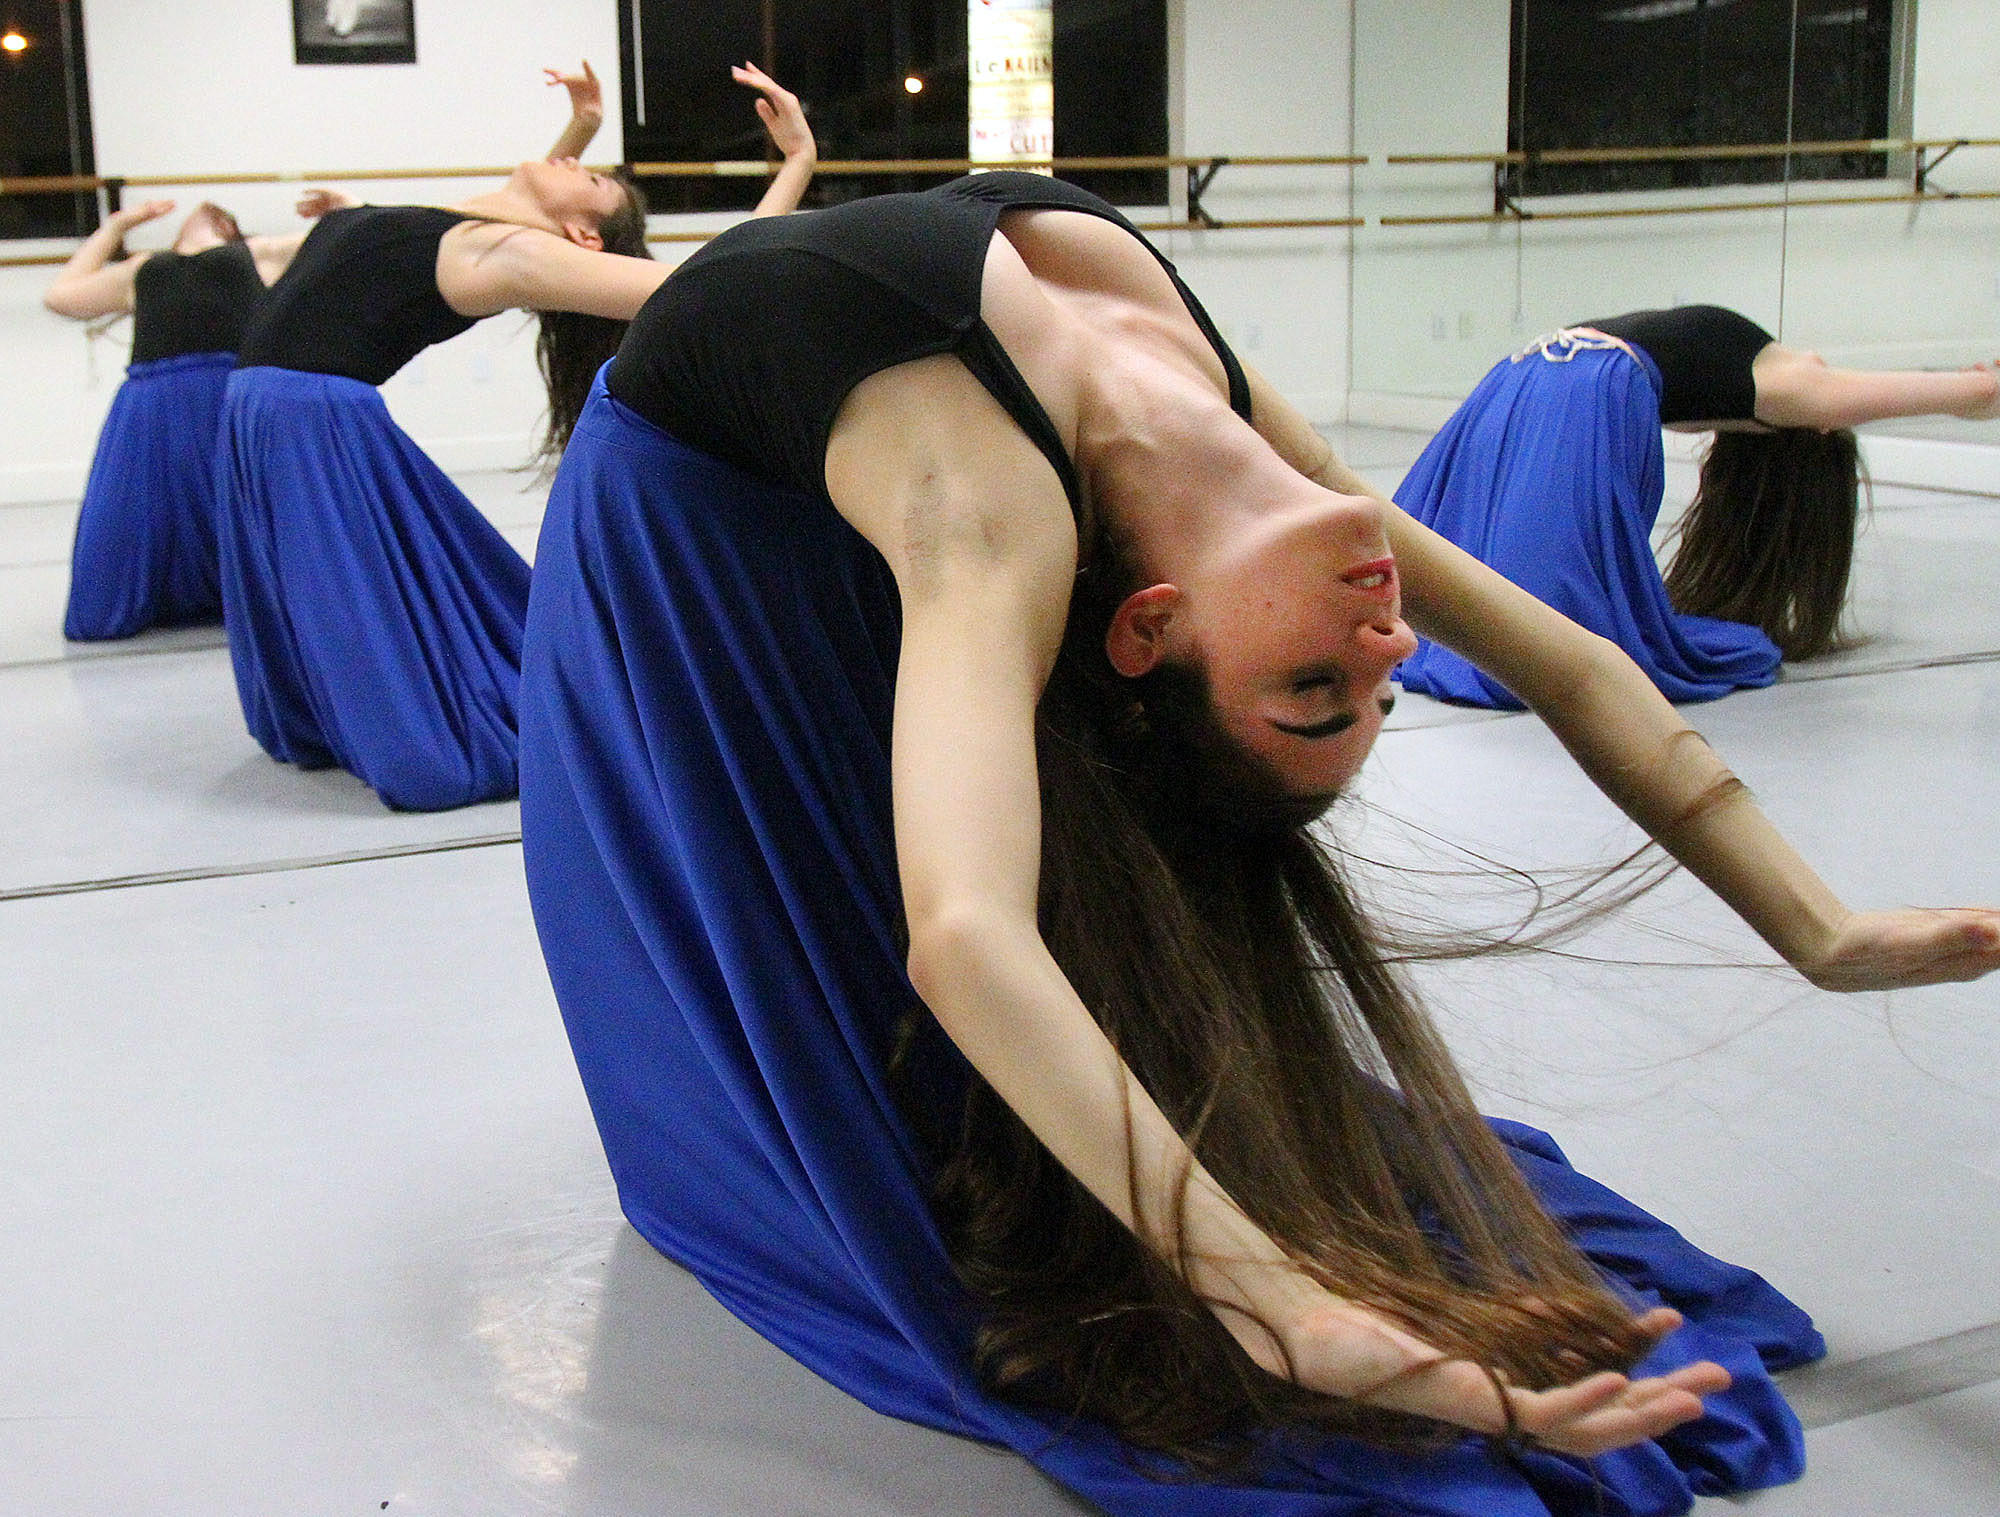 """Tenie Avanessian, 18, of Glendale, rehearses a scene from """"Priceless Soul, A Tribute to the Life of Albert Djanbazian"""" at Ajanbazian Dance Foundation in La Crescenta on Tuesday, January 21, 2014. The dance, which was choreographed by Anna Djanbazian for her brother Albert who succumbed to cancer, will be performed at Glendale Community College on Sunday, January 26th."""